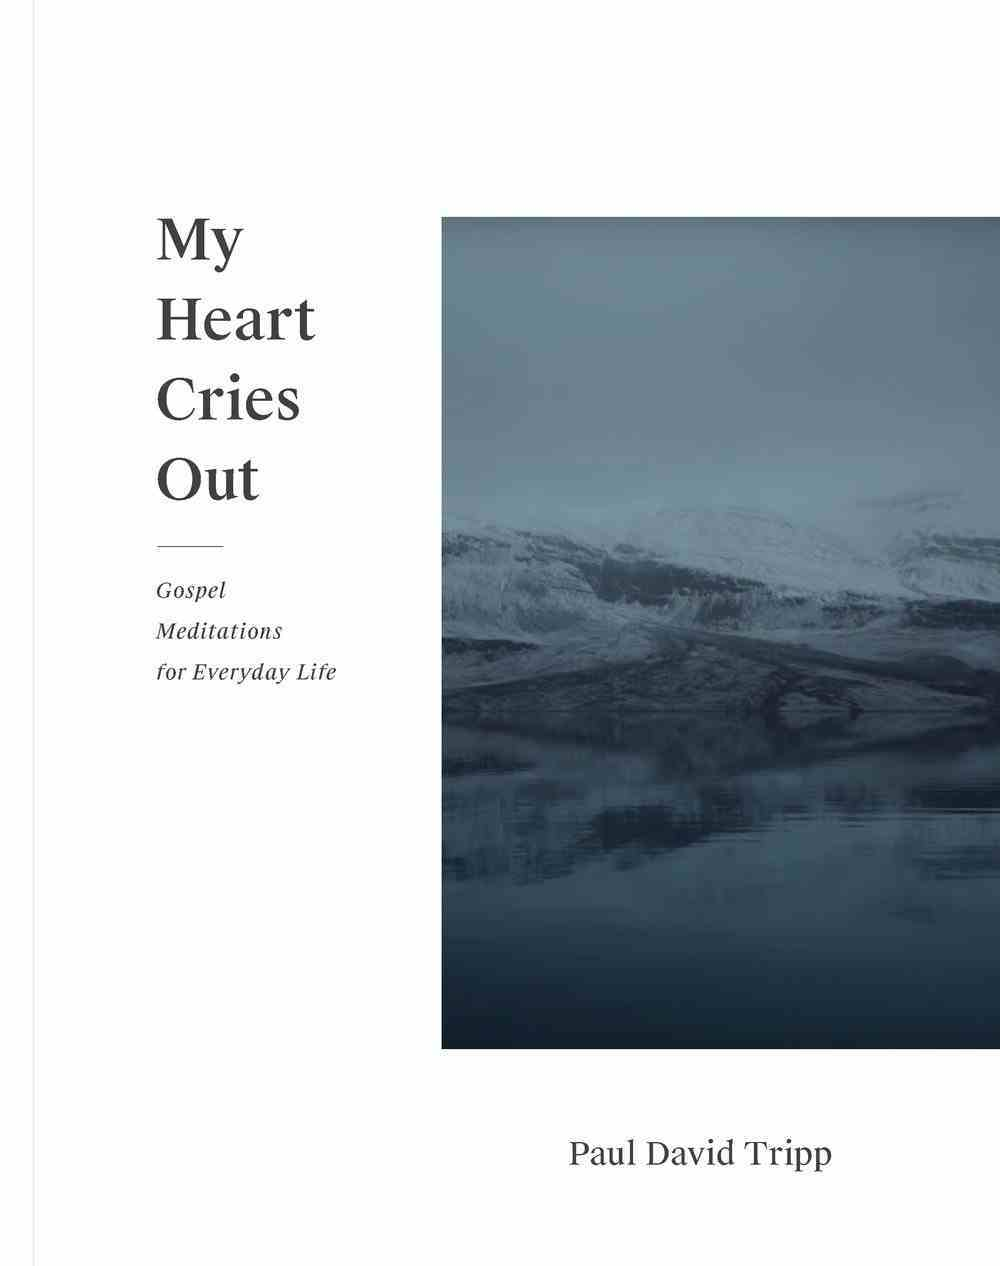 My Heart Cries Out: Gospel Meditations For Everyday Life Hardback